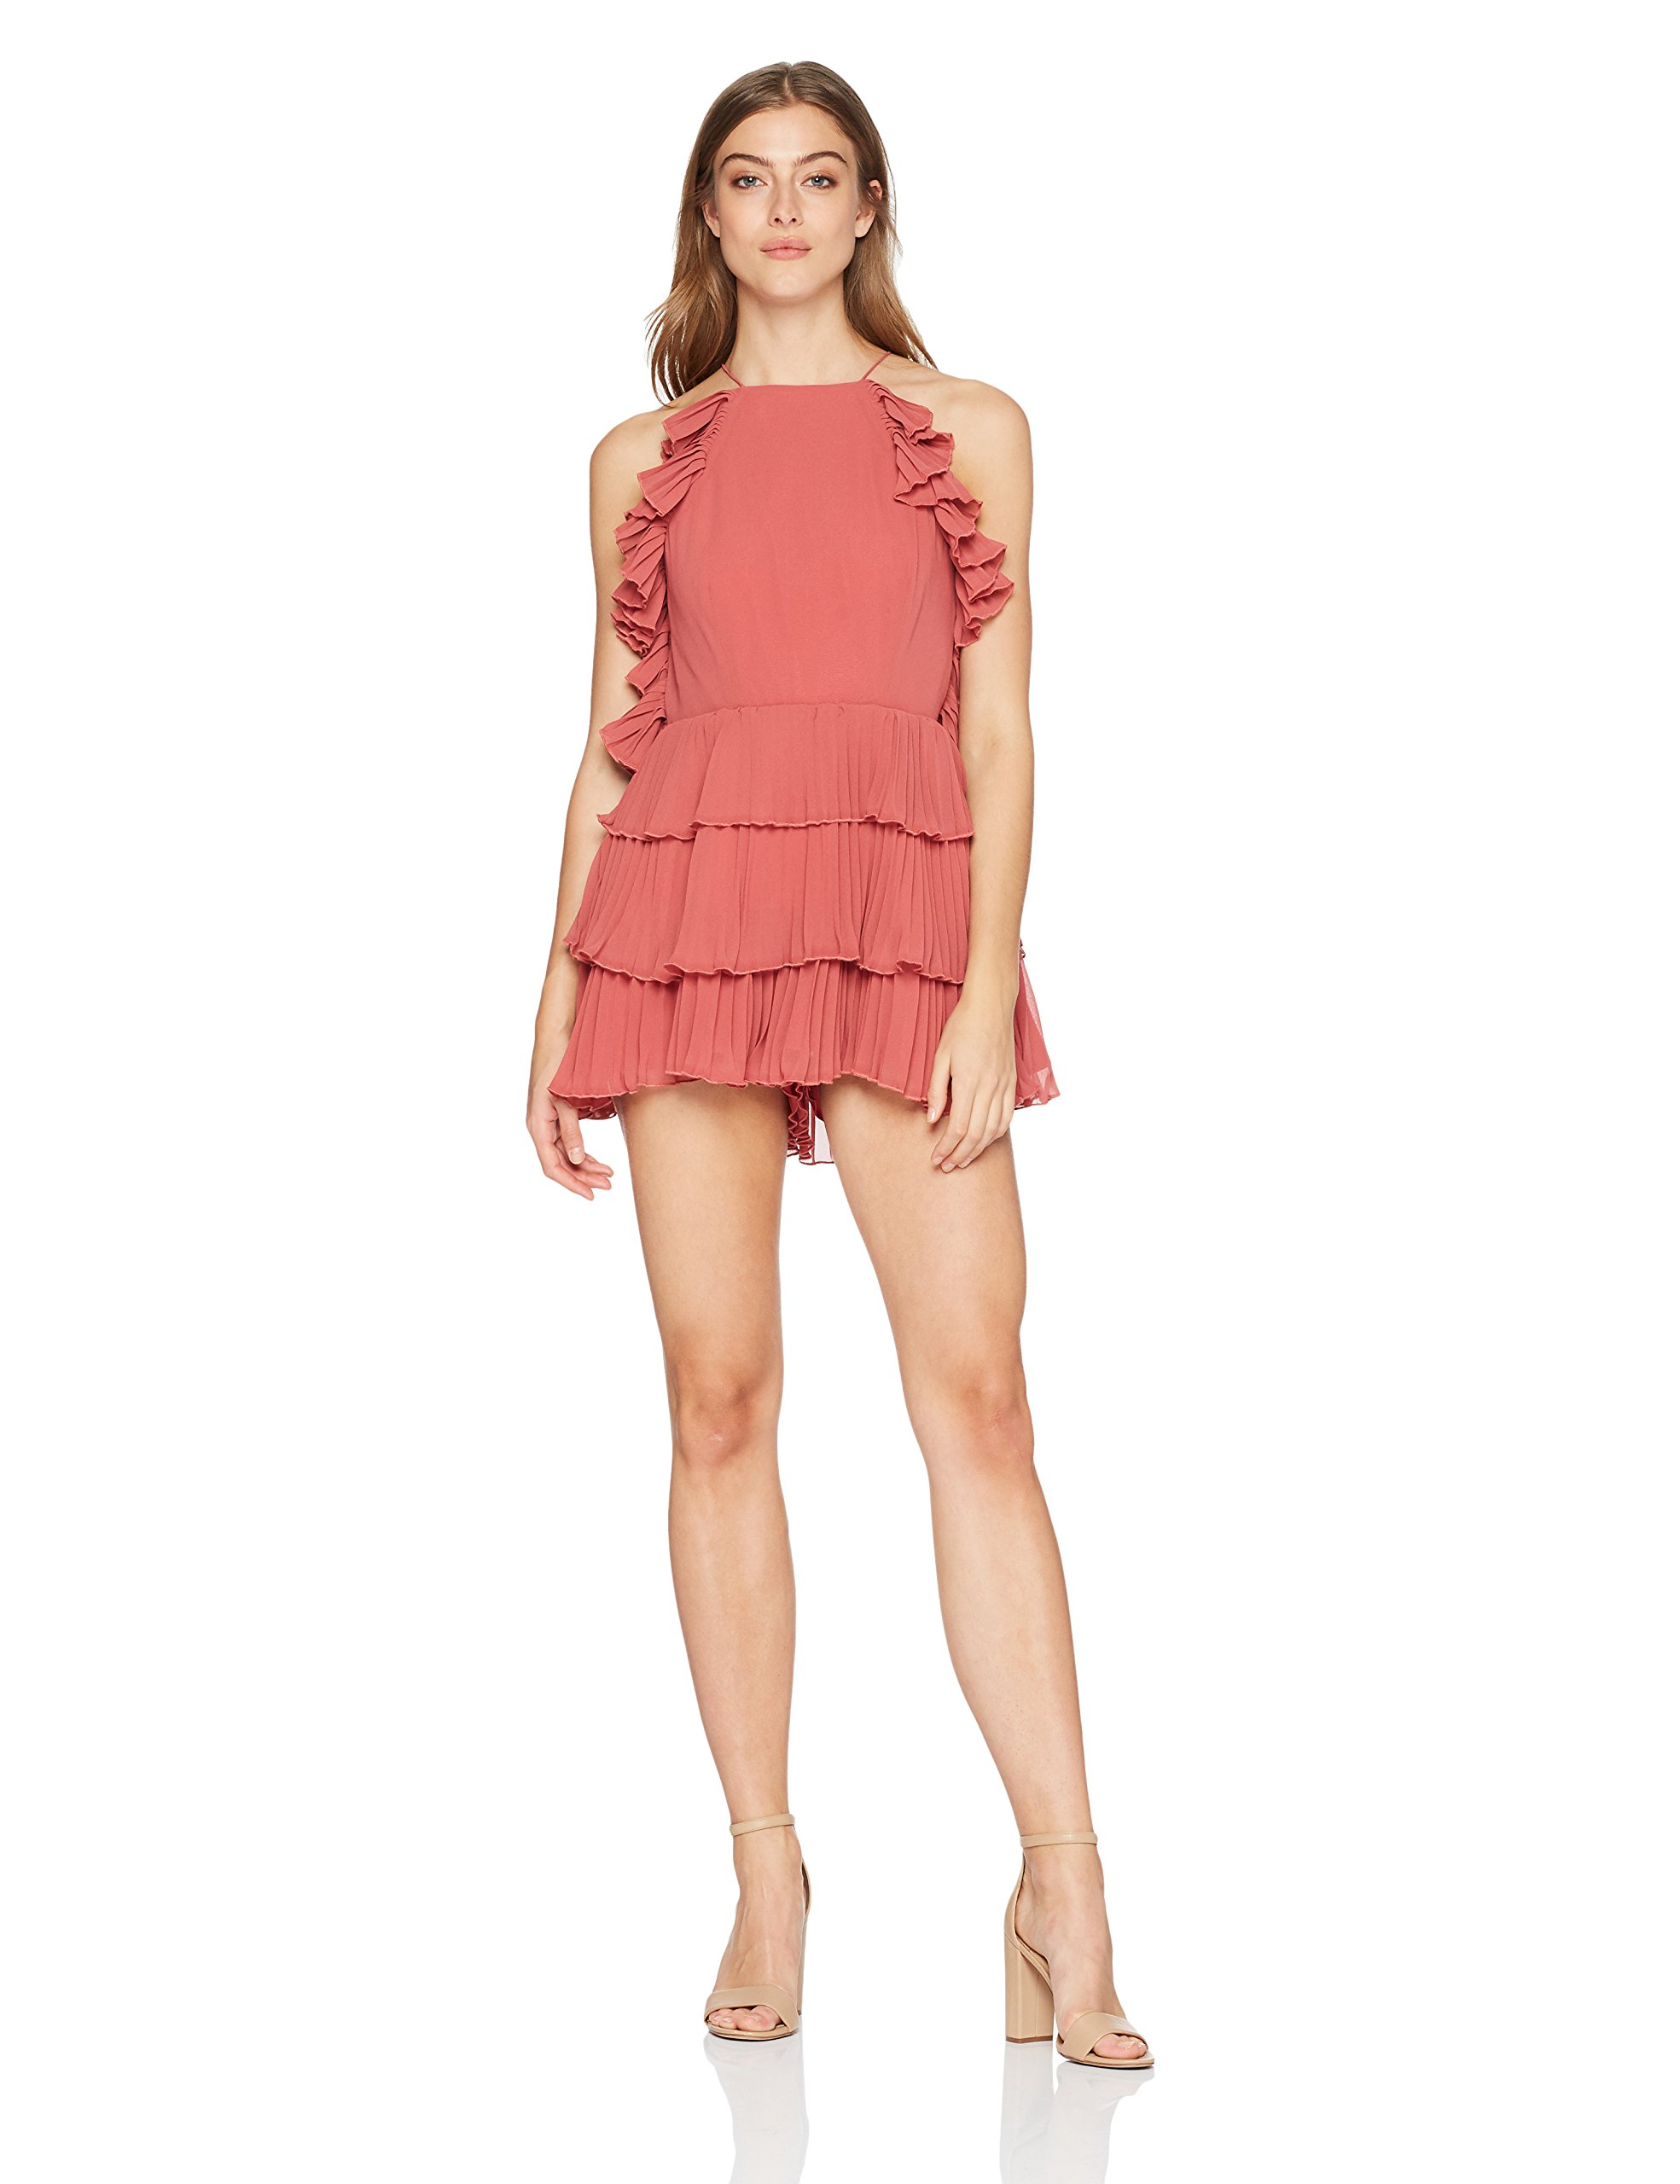 Keepsake The Label Women's Say something Sleeveless Romper Playsuit, Mineral Red, L